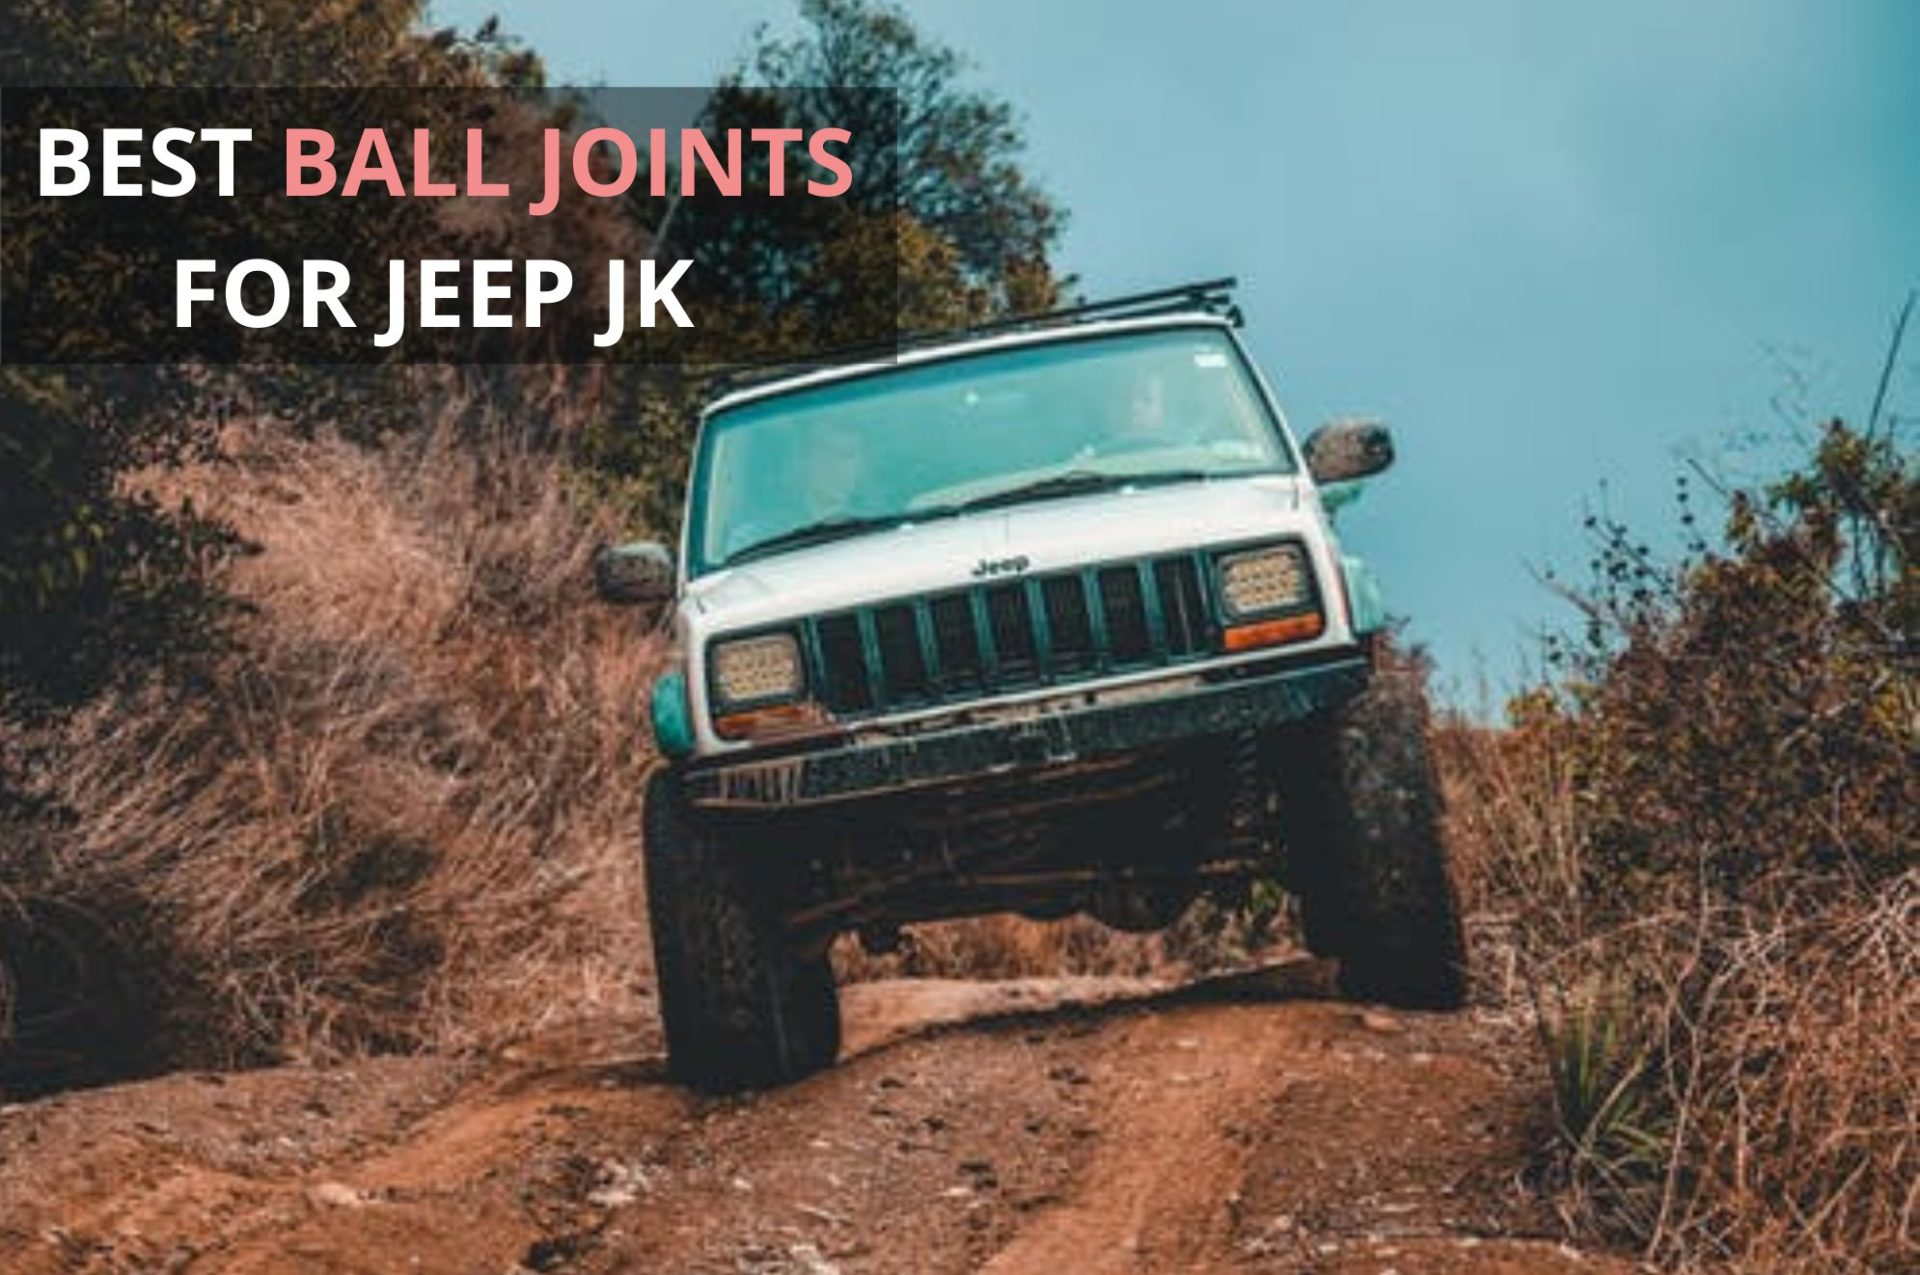 Best Ball Joints for Jeep JK